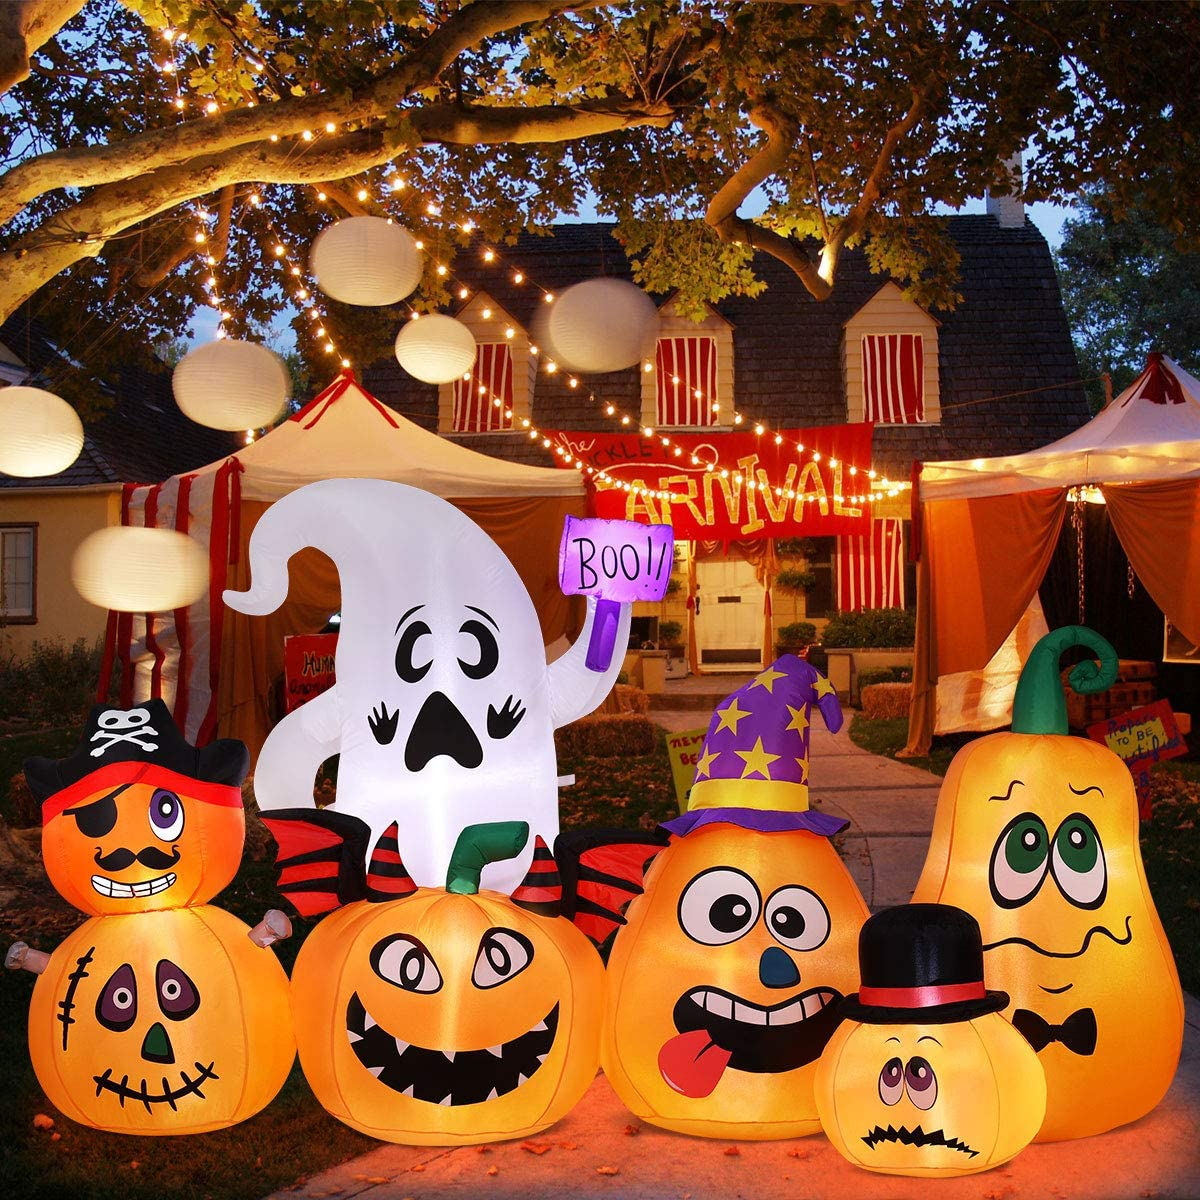 Halloween Inflatables Halloween Blow Up Pumpkin Ghost Decorations for Halloween Outdoor Yard Lawn Decorations